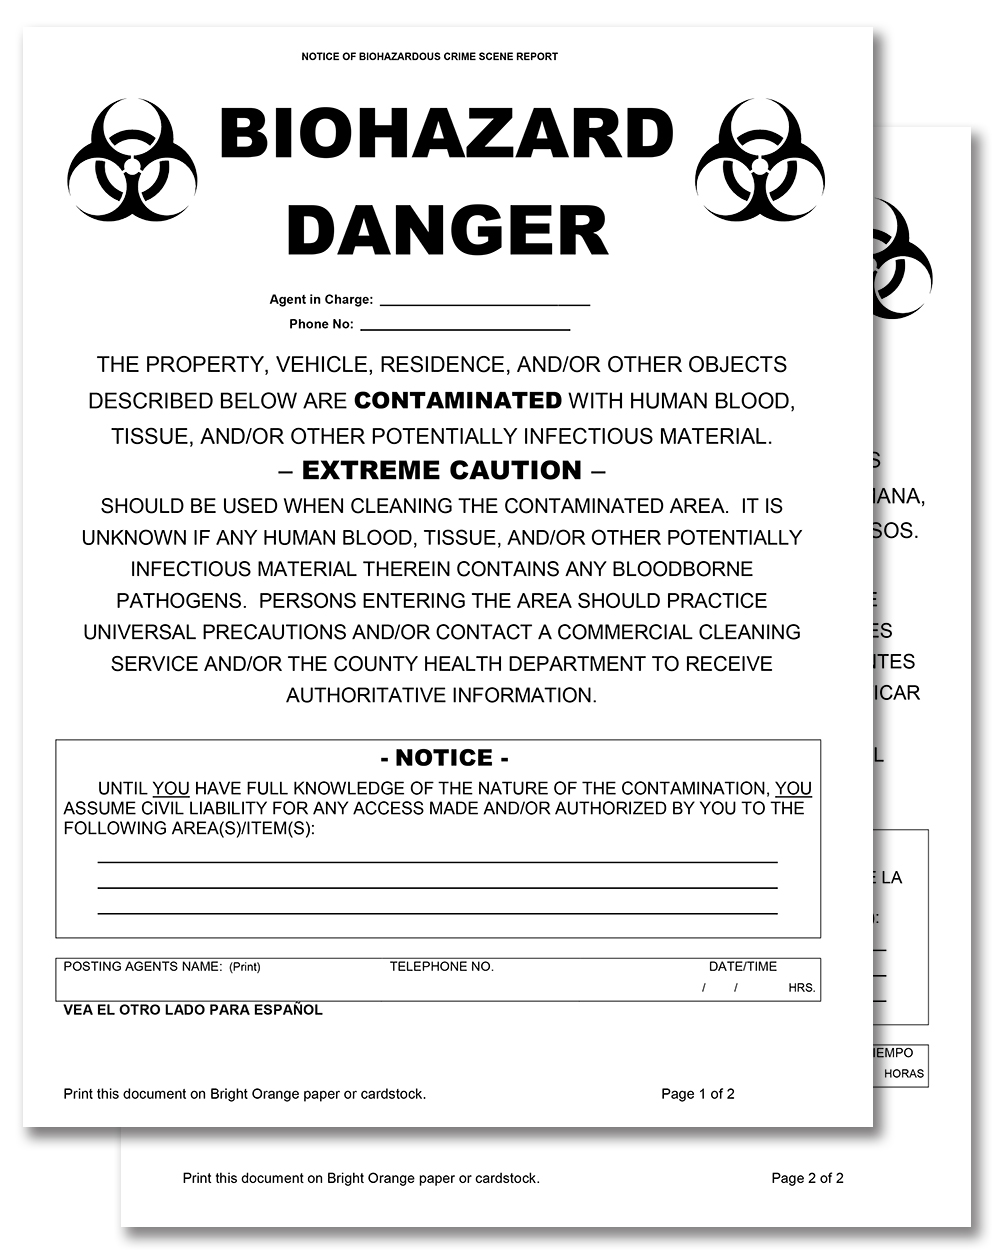 Biohazard Danger Notice (Spanish on Reverse)